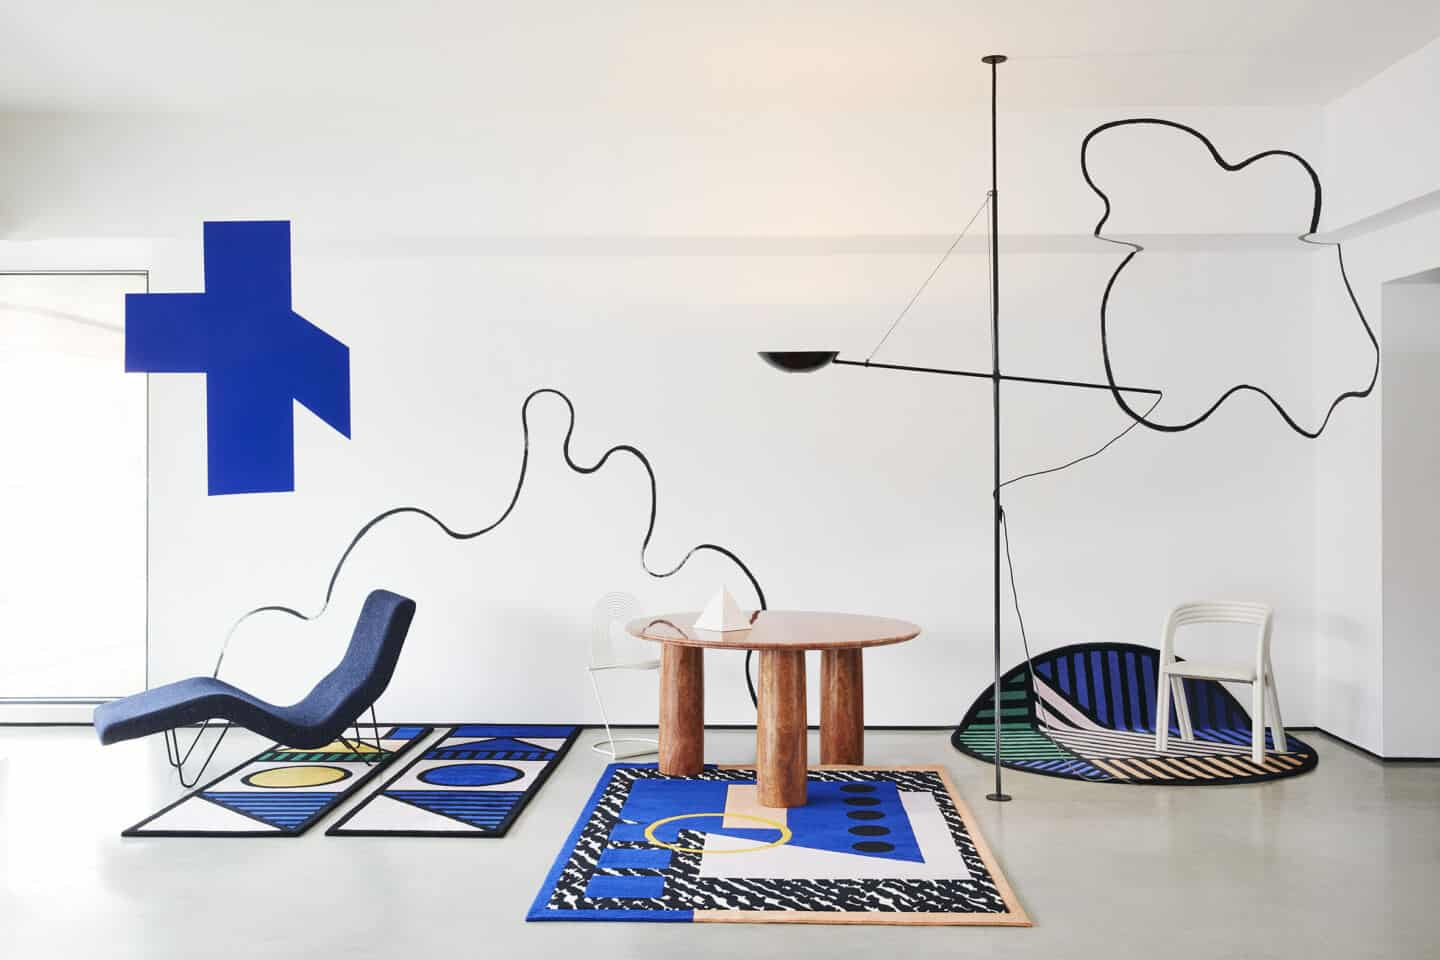 Designer rugs from Floor Story. The Camille Walala collection displayed in a white studio setting.